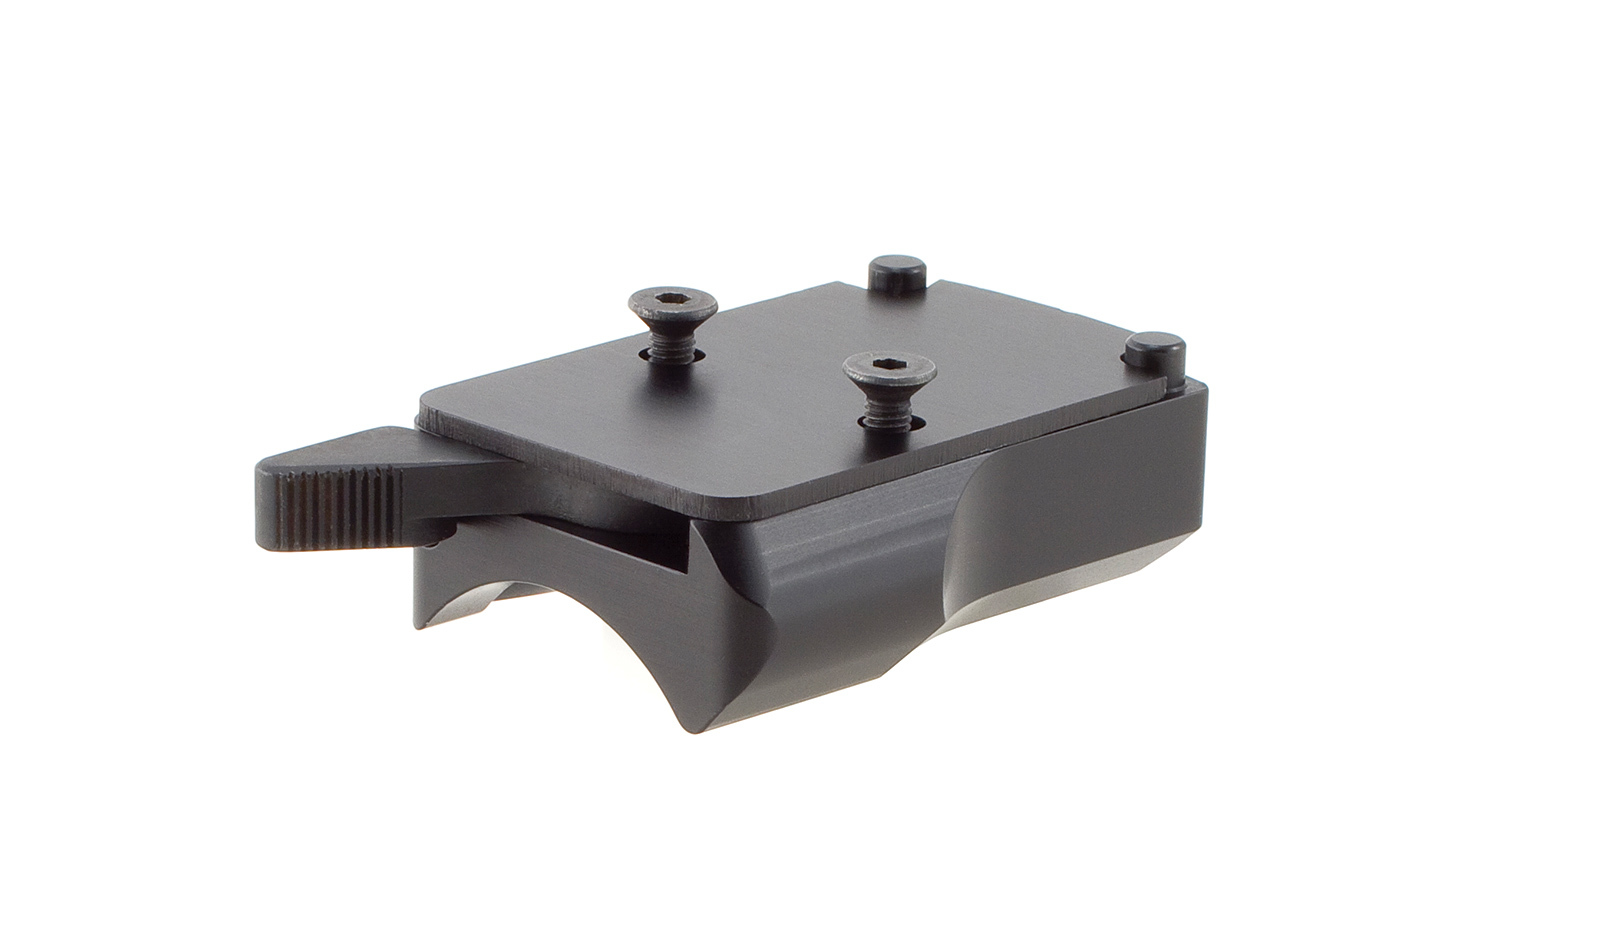 Trijicon RMR®/SRO® Mount for Blaser Custom Rifle